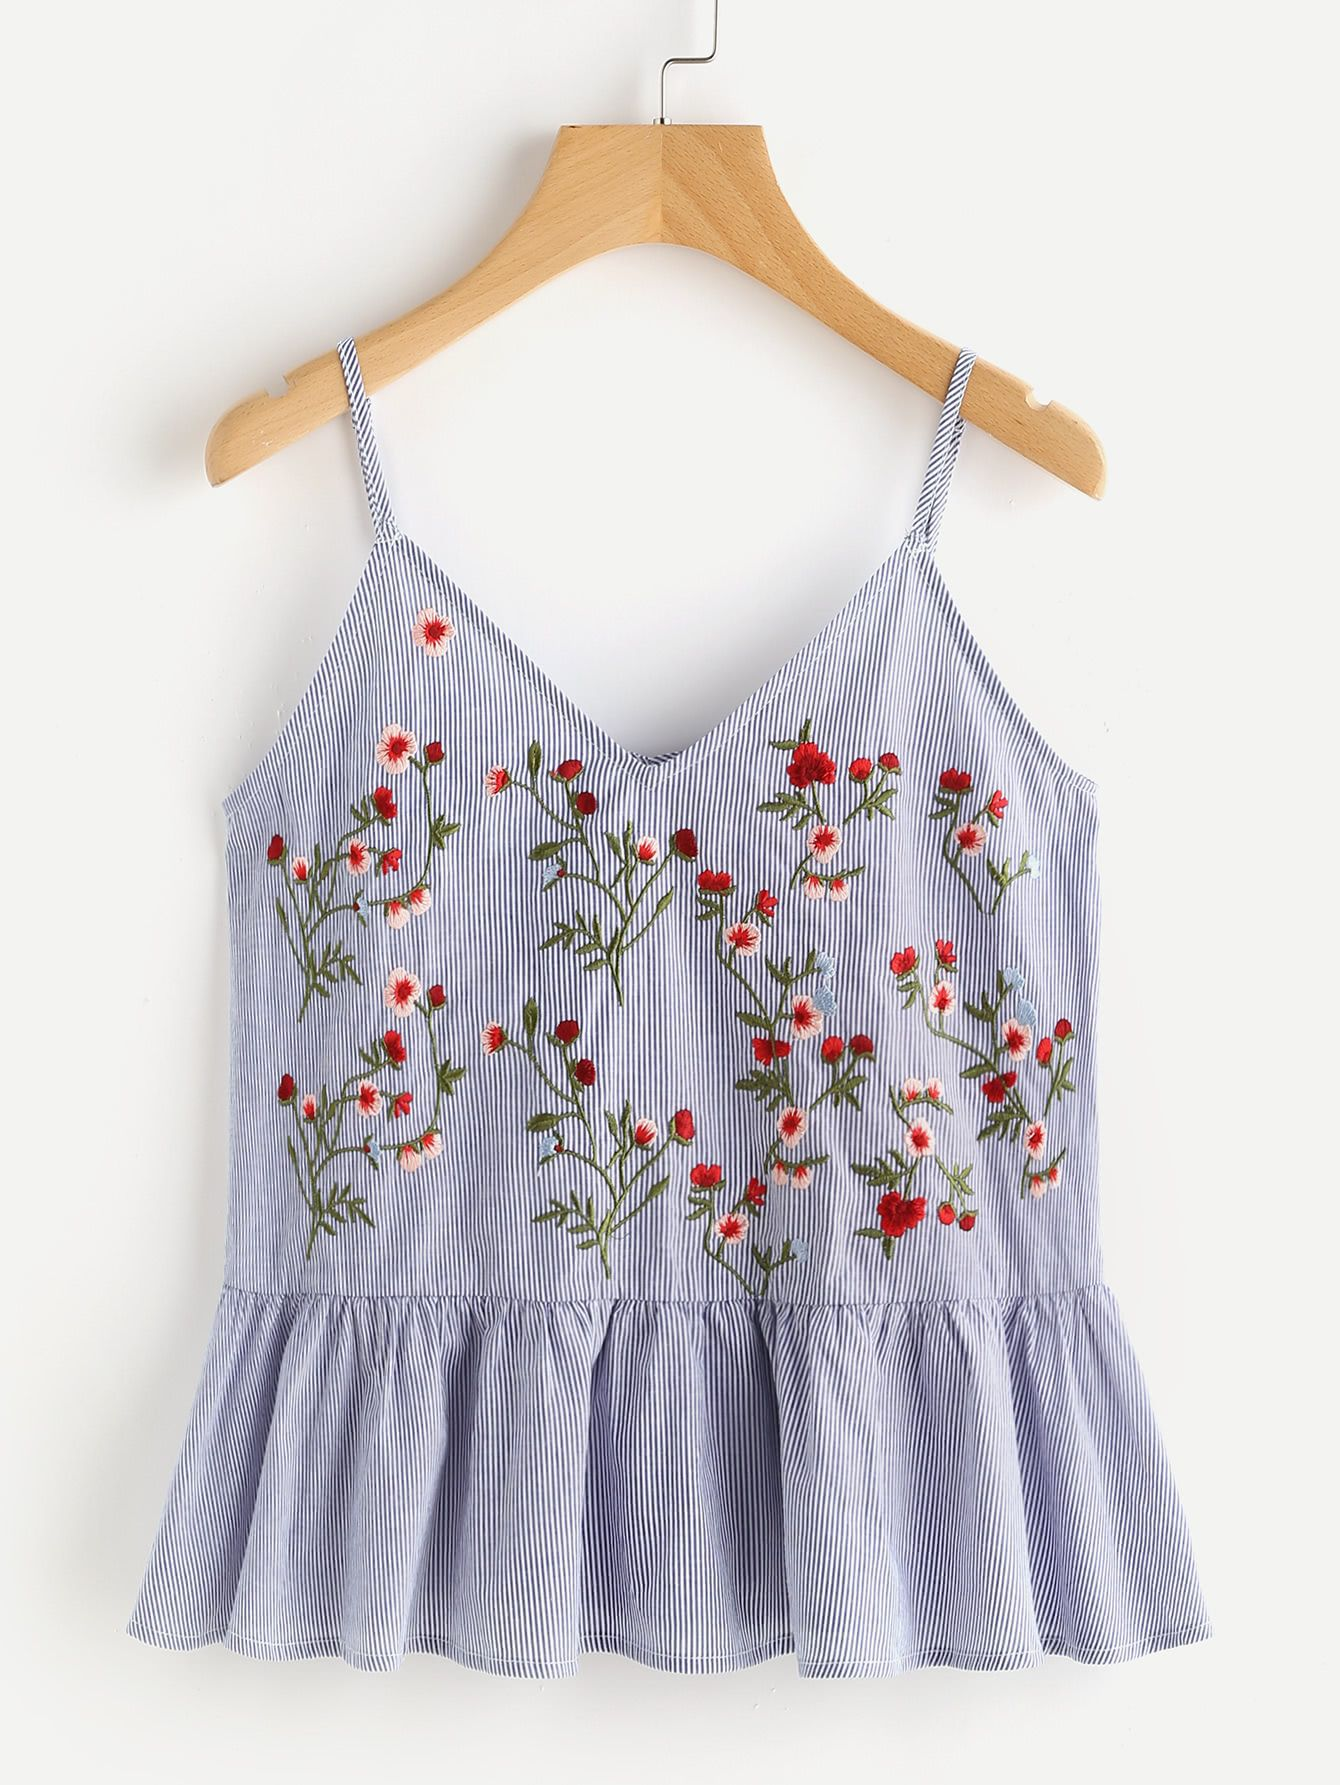 a8a1f18496bf1 Shop Blossom Embroidered Ruffle Cami Top online. SheIn offers Blossom  Embroidered Ruffle Cami Top   more to fit your fashionable needs.